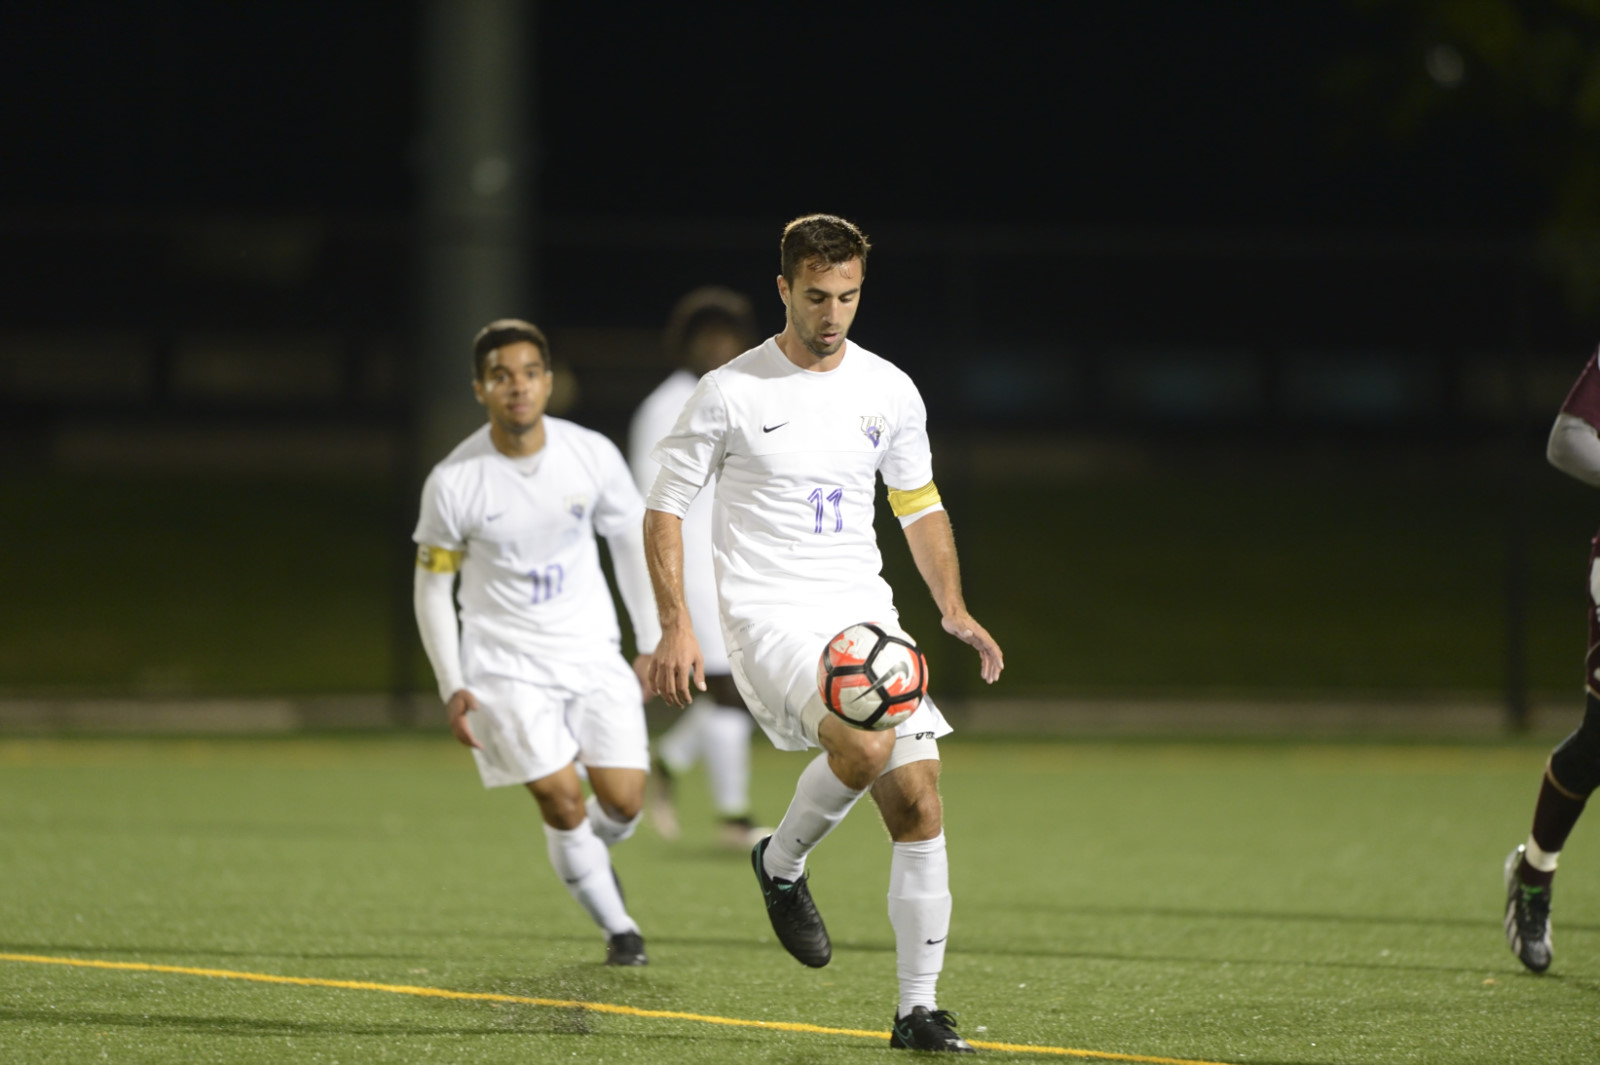 UB Men's Soccer Stays In ECC Championship Tournament Hunt With 6-2 Senior Day Win Over Queens (N.Y.) College